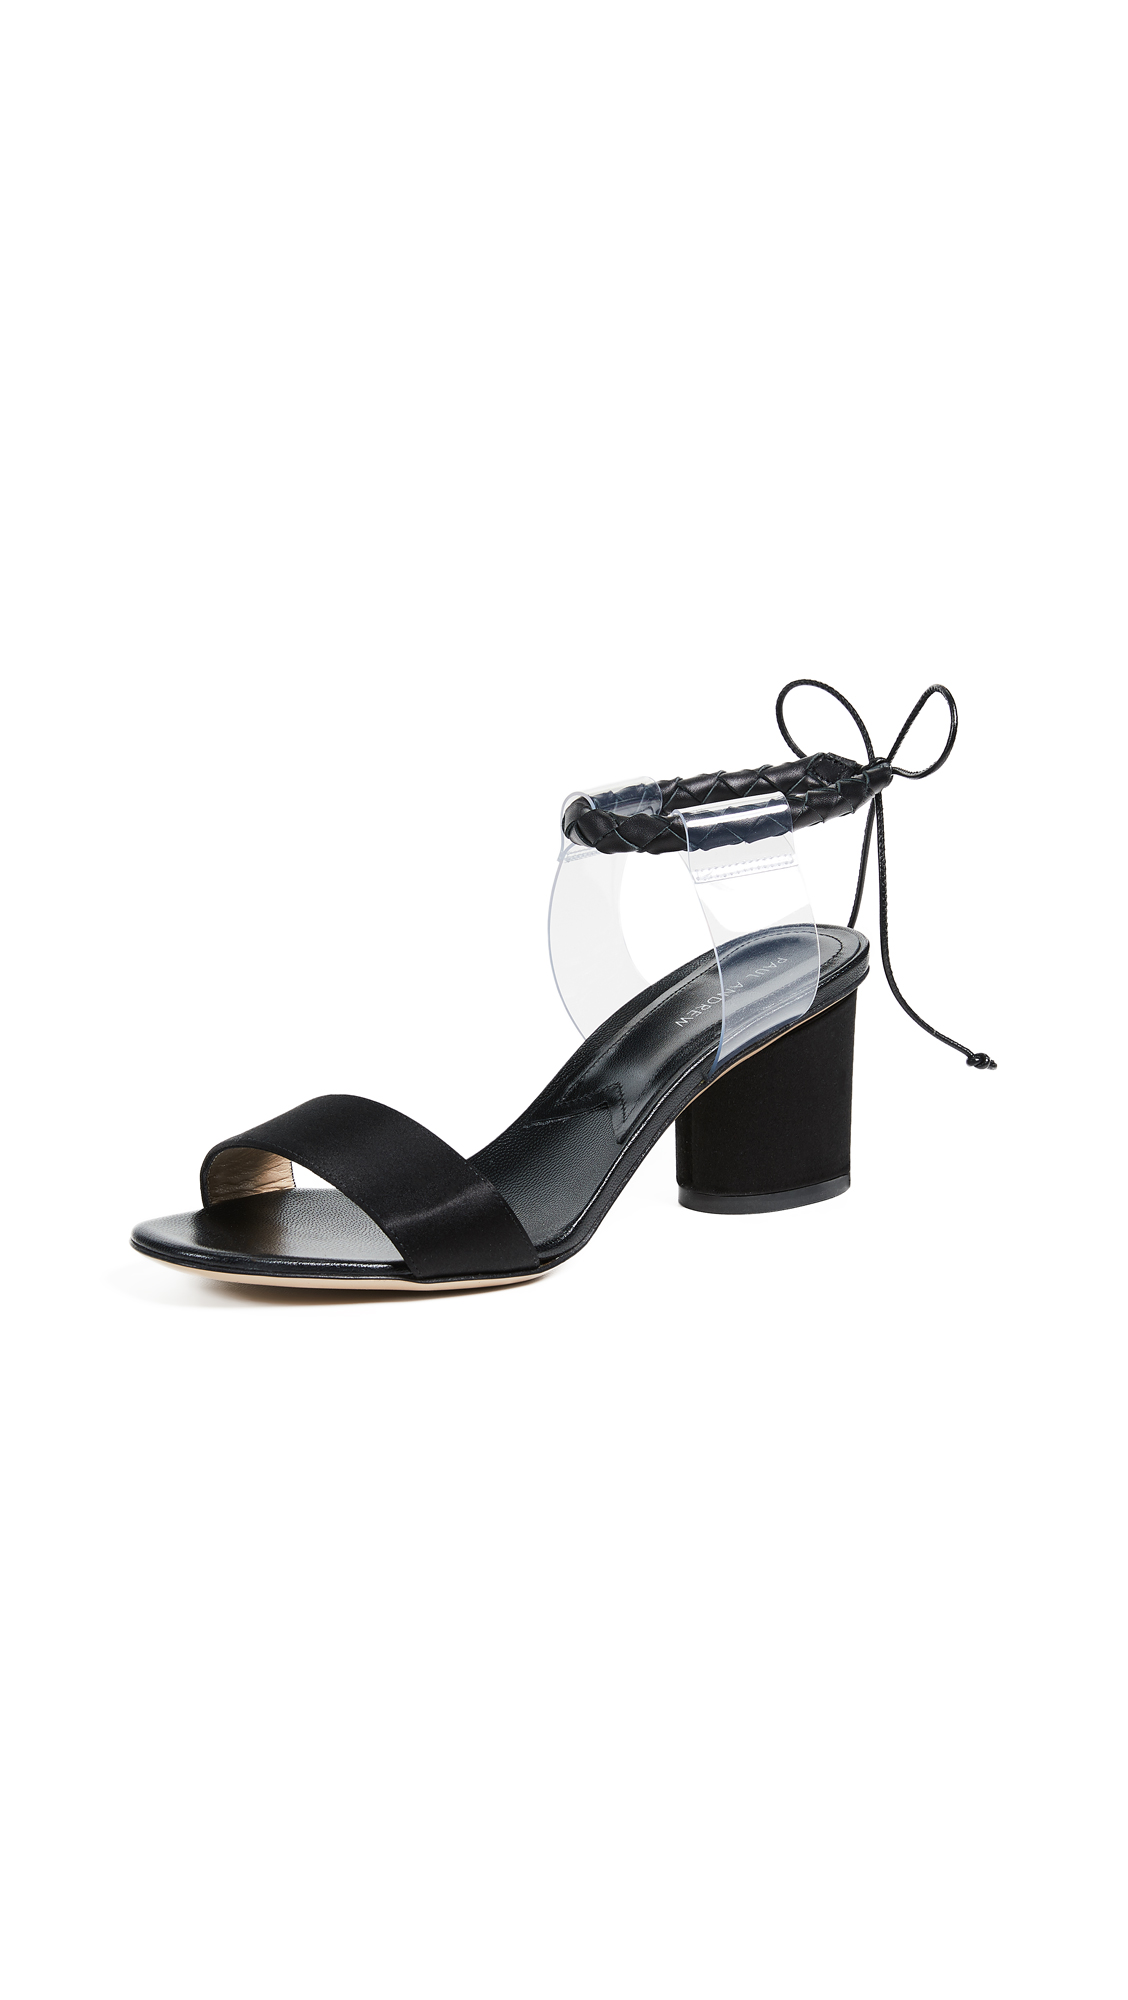 Paul Andrew Estes Sandal Pumps - Black/Transparent